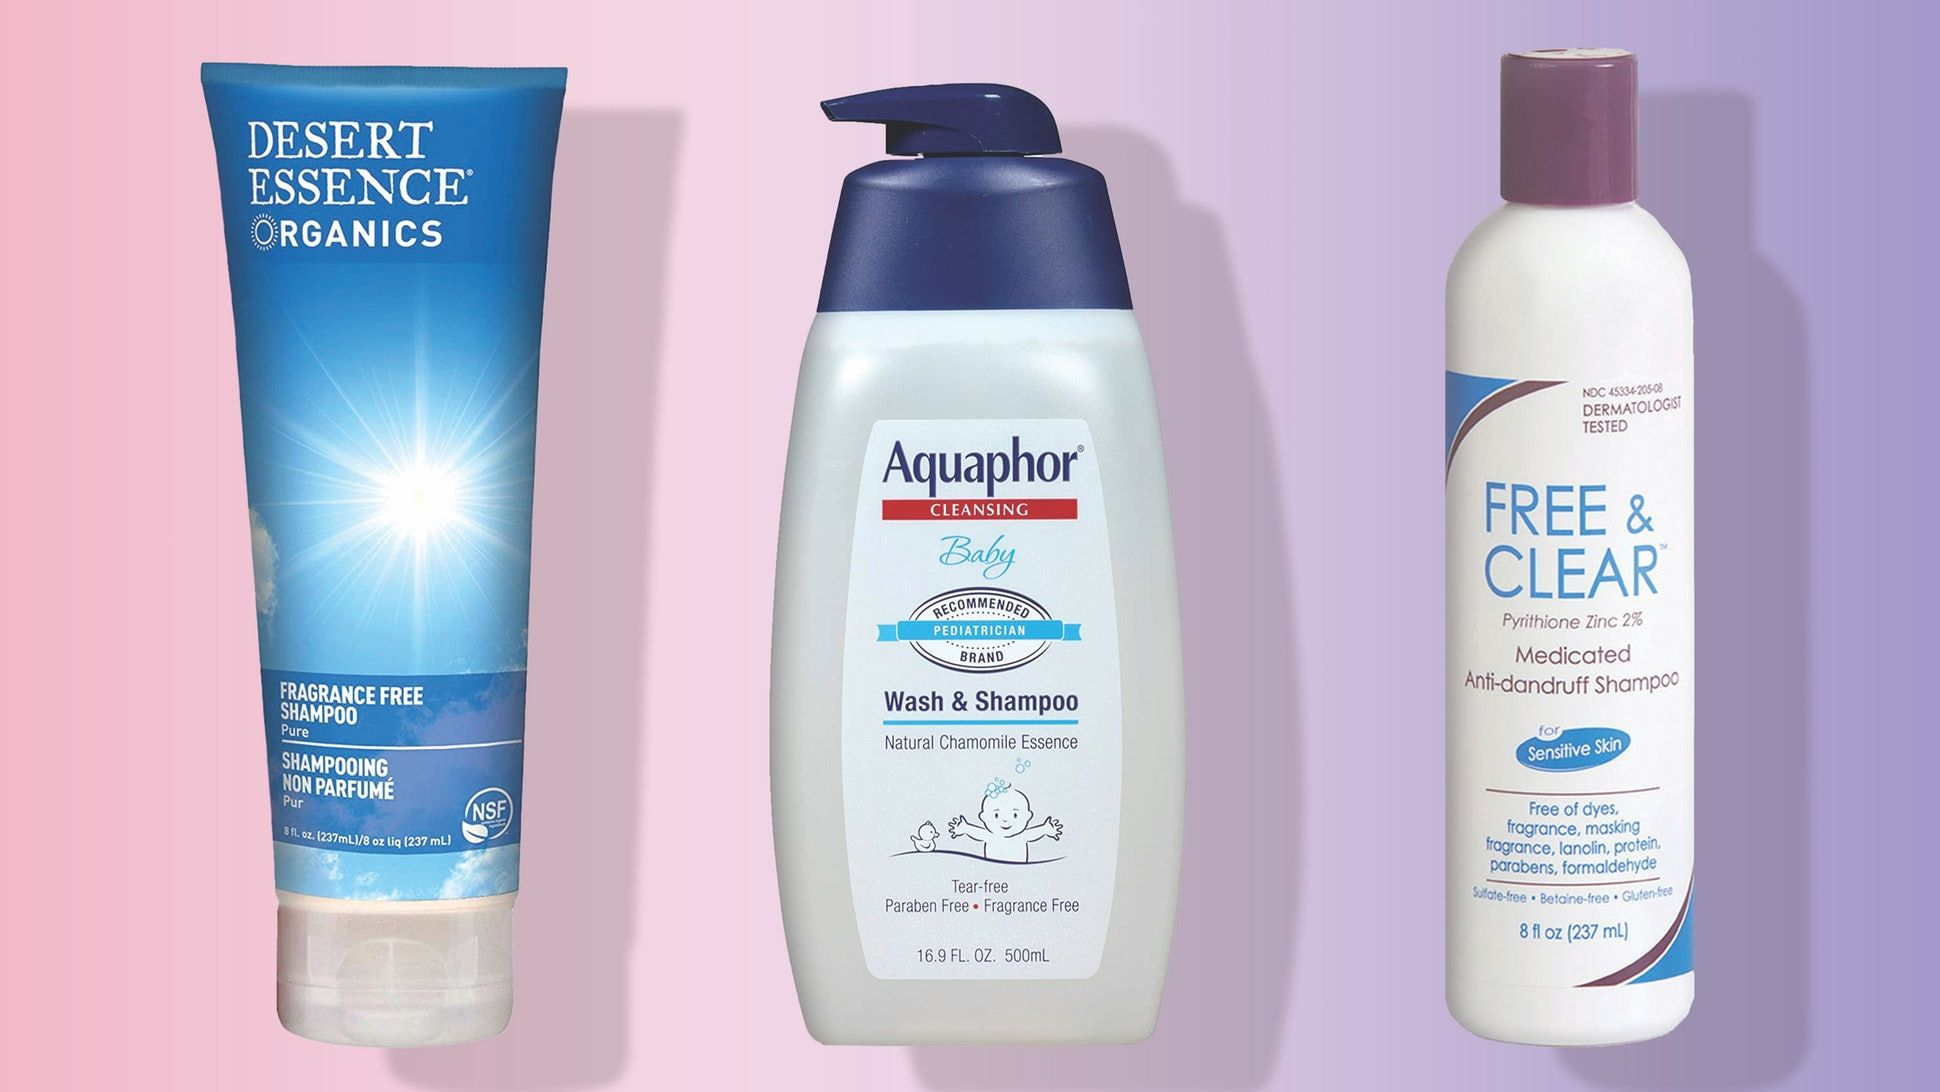 These Are The Best Fragrance Free Shampoos For People With Sensitive Skin Scalps In 2020 Fragrance Free Shampoo Fragrance Free Products Shampoo Free